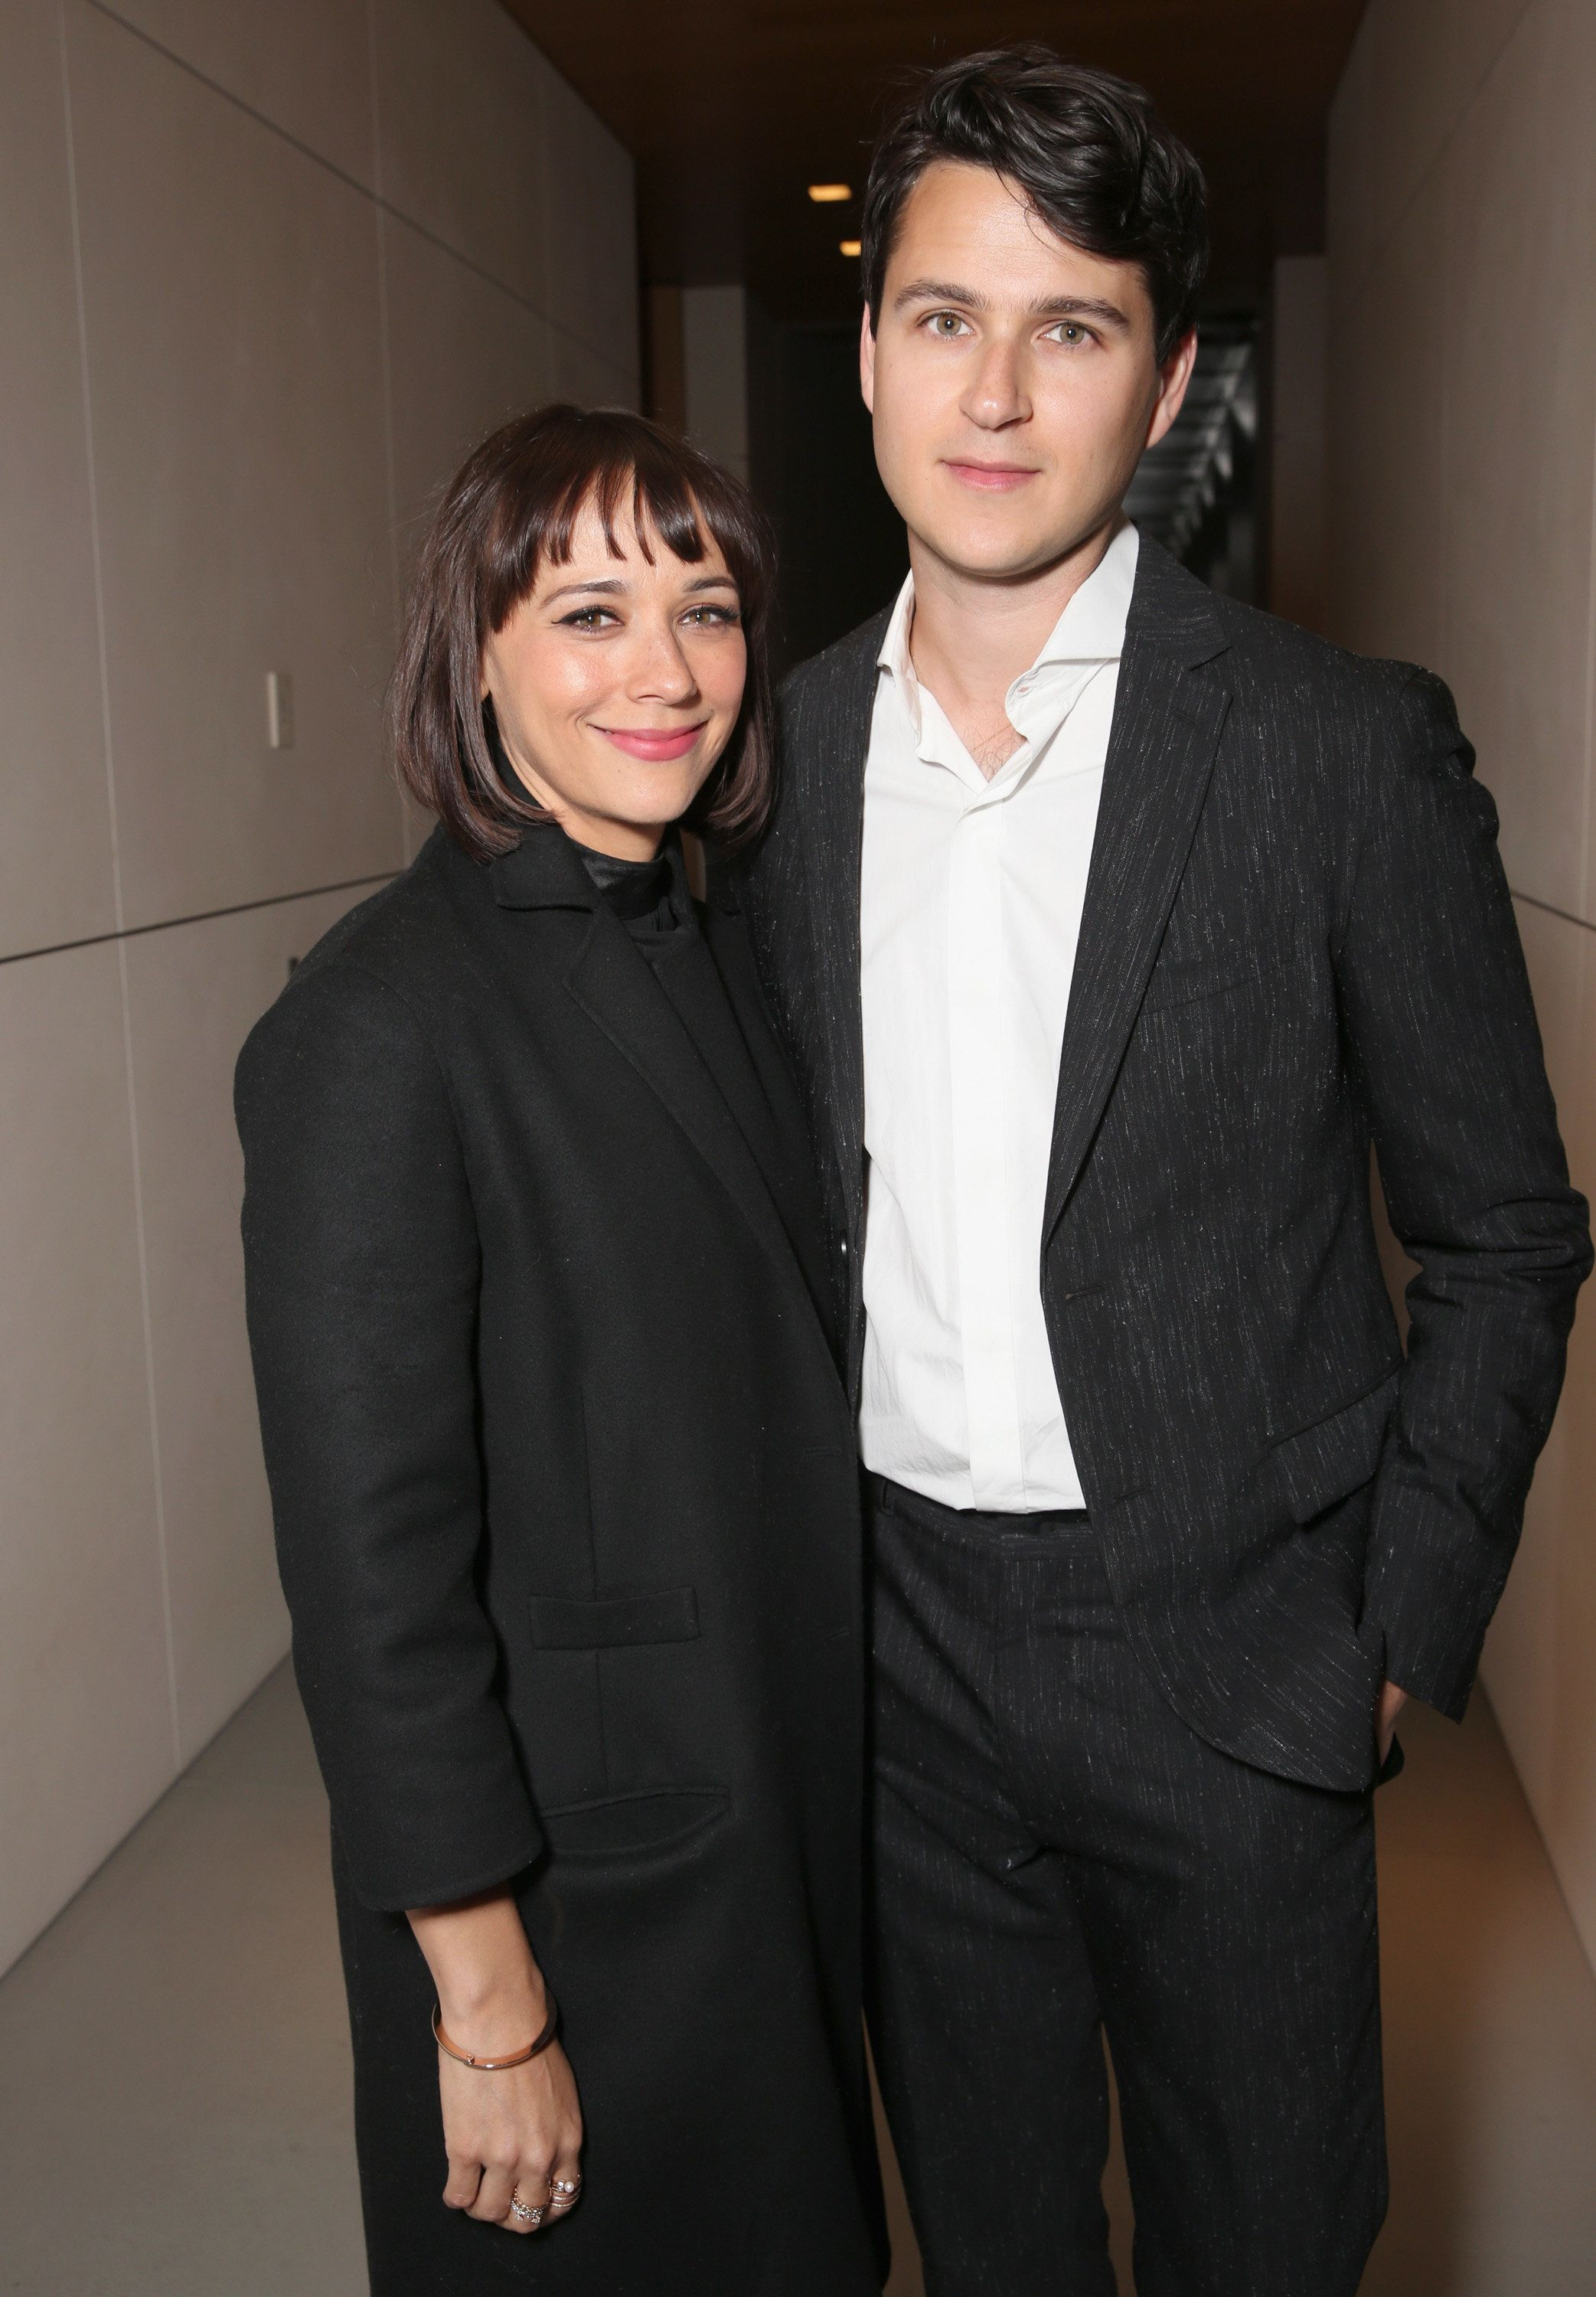 BEVERLY HILLS, CALIFORNIA - MARCH 24:  Actor Rashida Jones and musician Ezra Koenig attend UCLA IOES celebration of the Champions of our Planet's Future on March 24, 2016 in Beverly Hills, California.  (Photo by Todd Williamson/Getty Images)